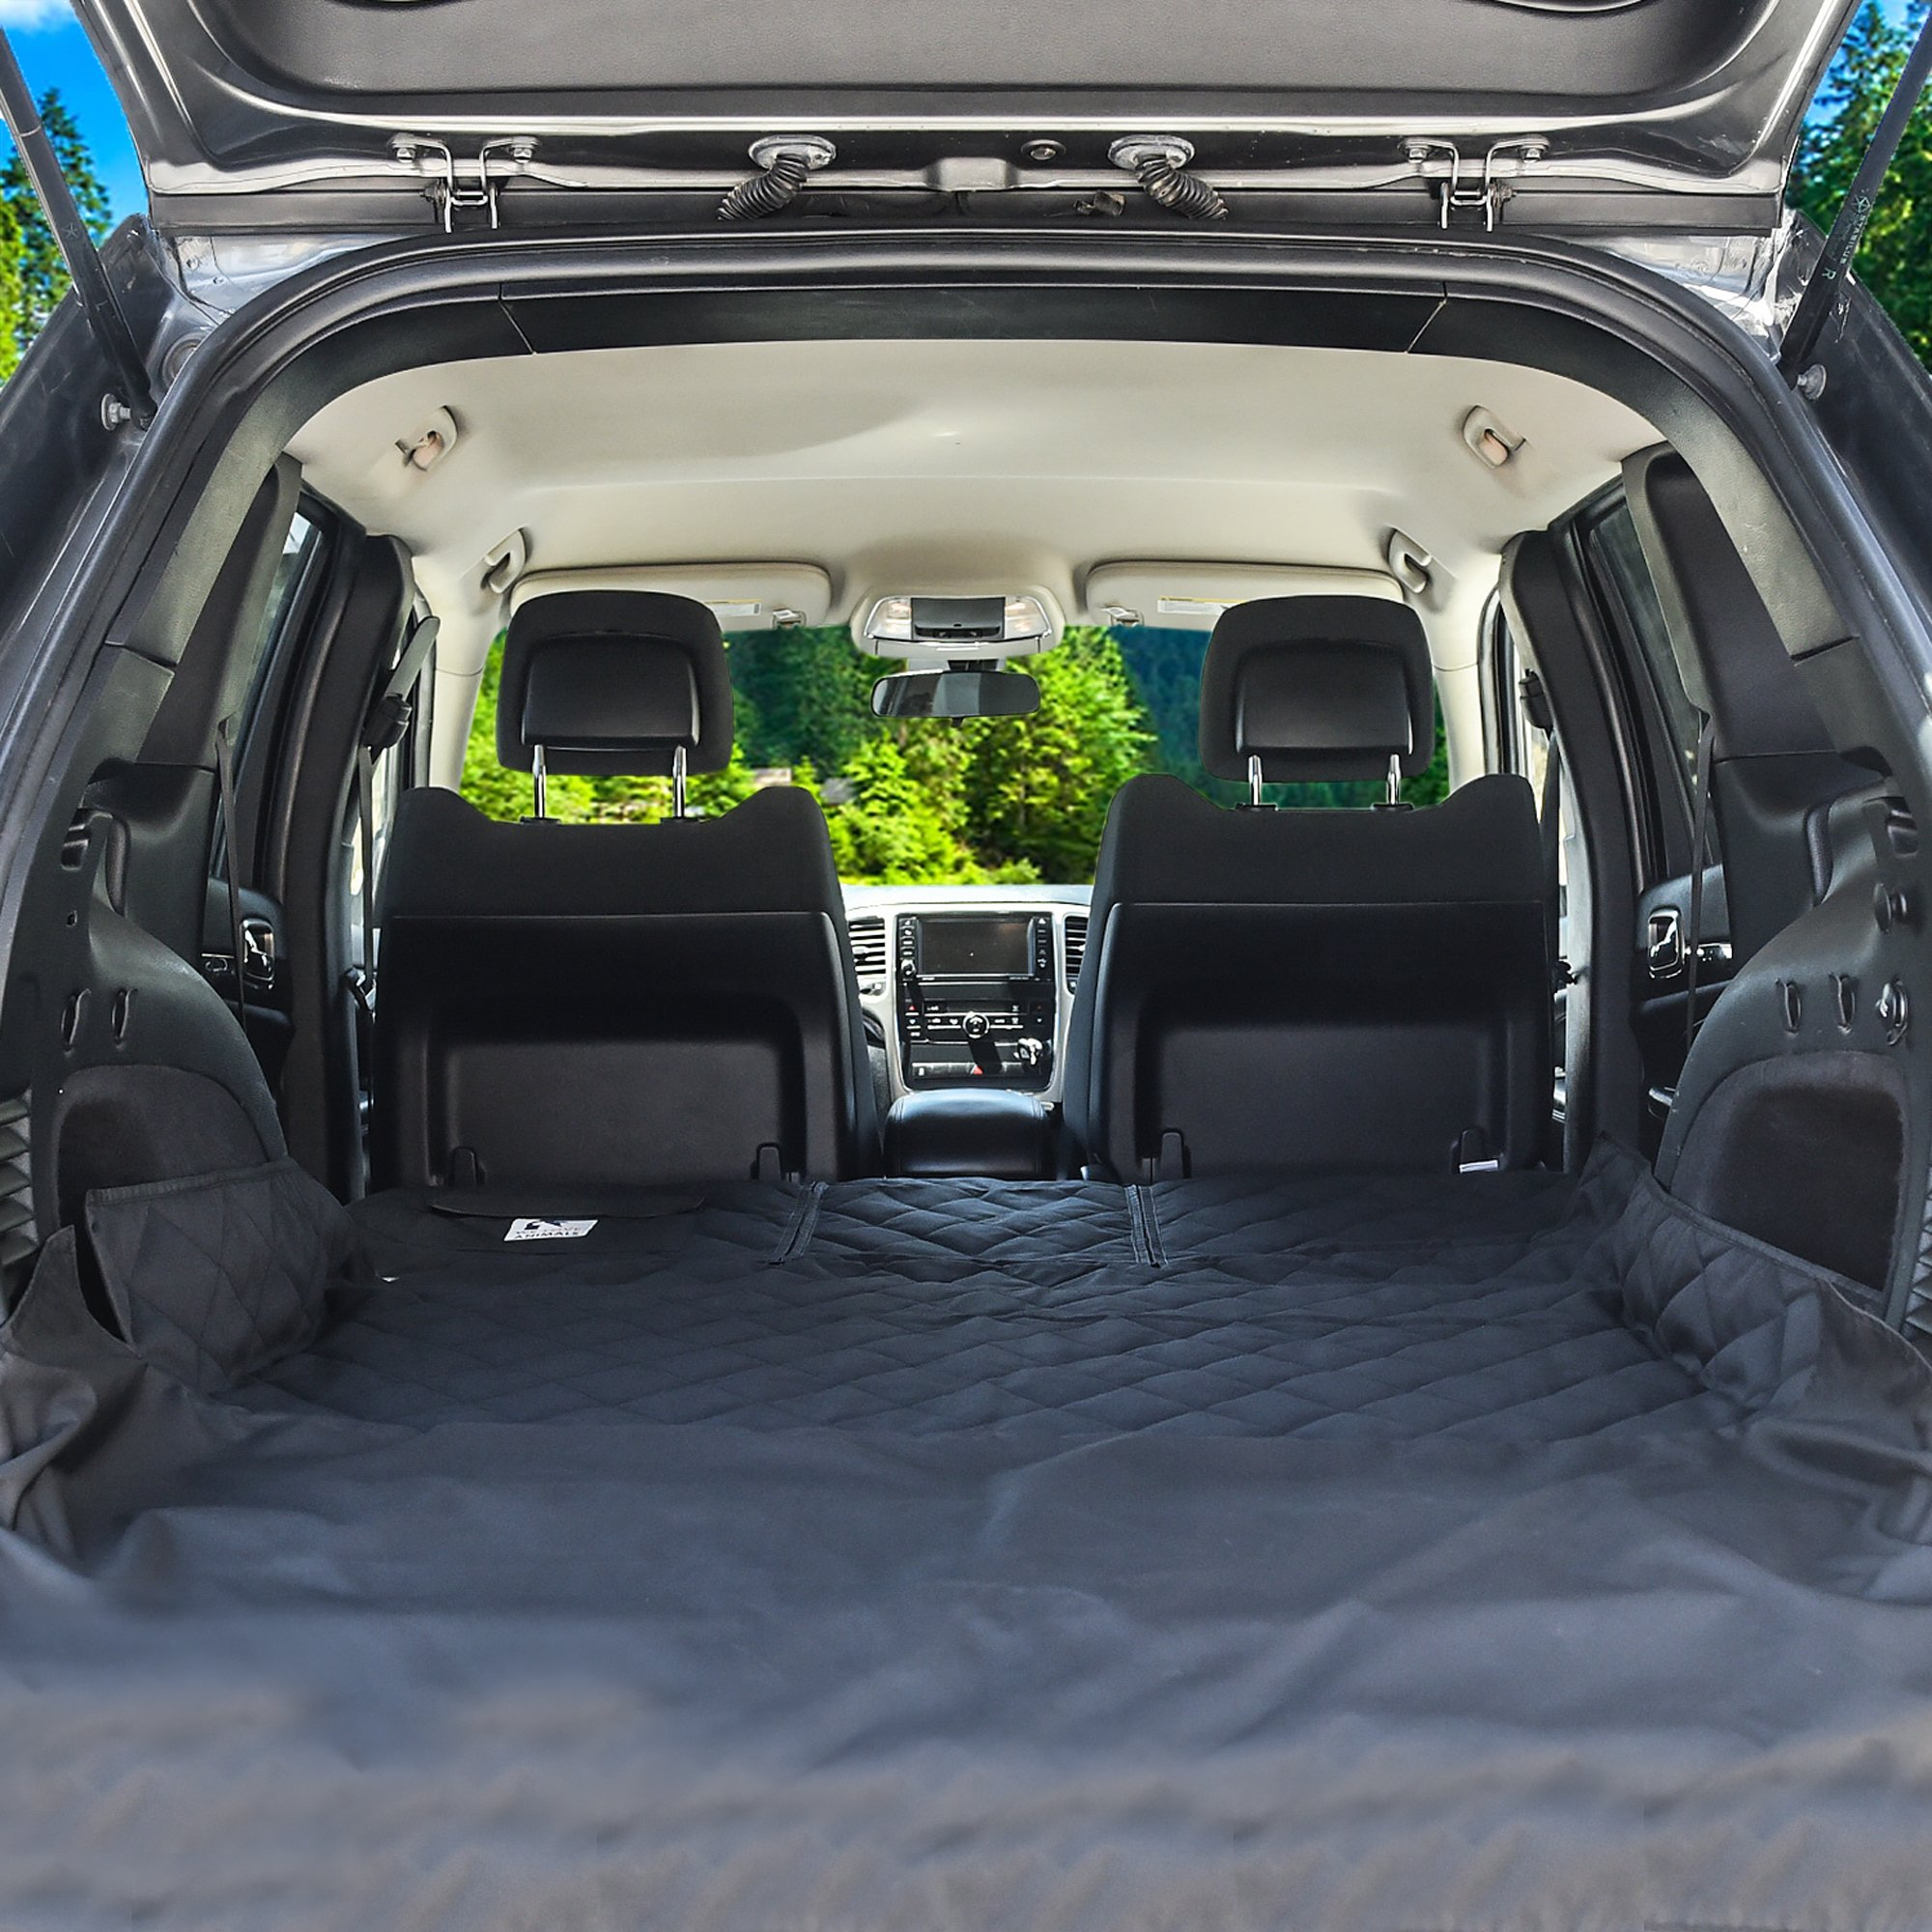 Dog Cargo Liner for SUV, Van, Truck & Jeep - Waterproof, Machine Washable, Nonslip Pet Seat Cover with Bumper Flap will keep your vehicle as clean as ever - XL, Universal Fit - BONUS Carry Bag by WE LOVE ANIMALS (Image #5)